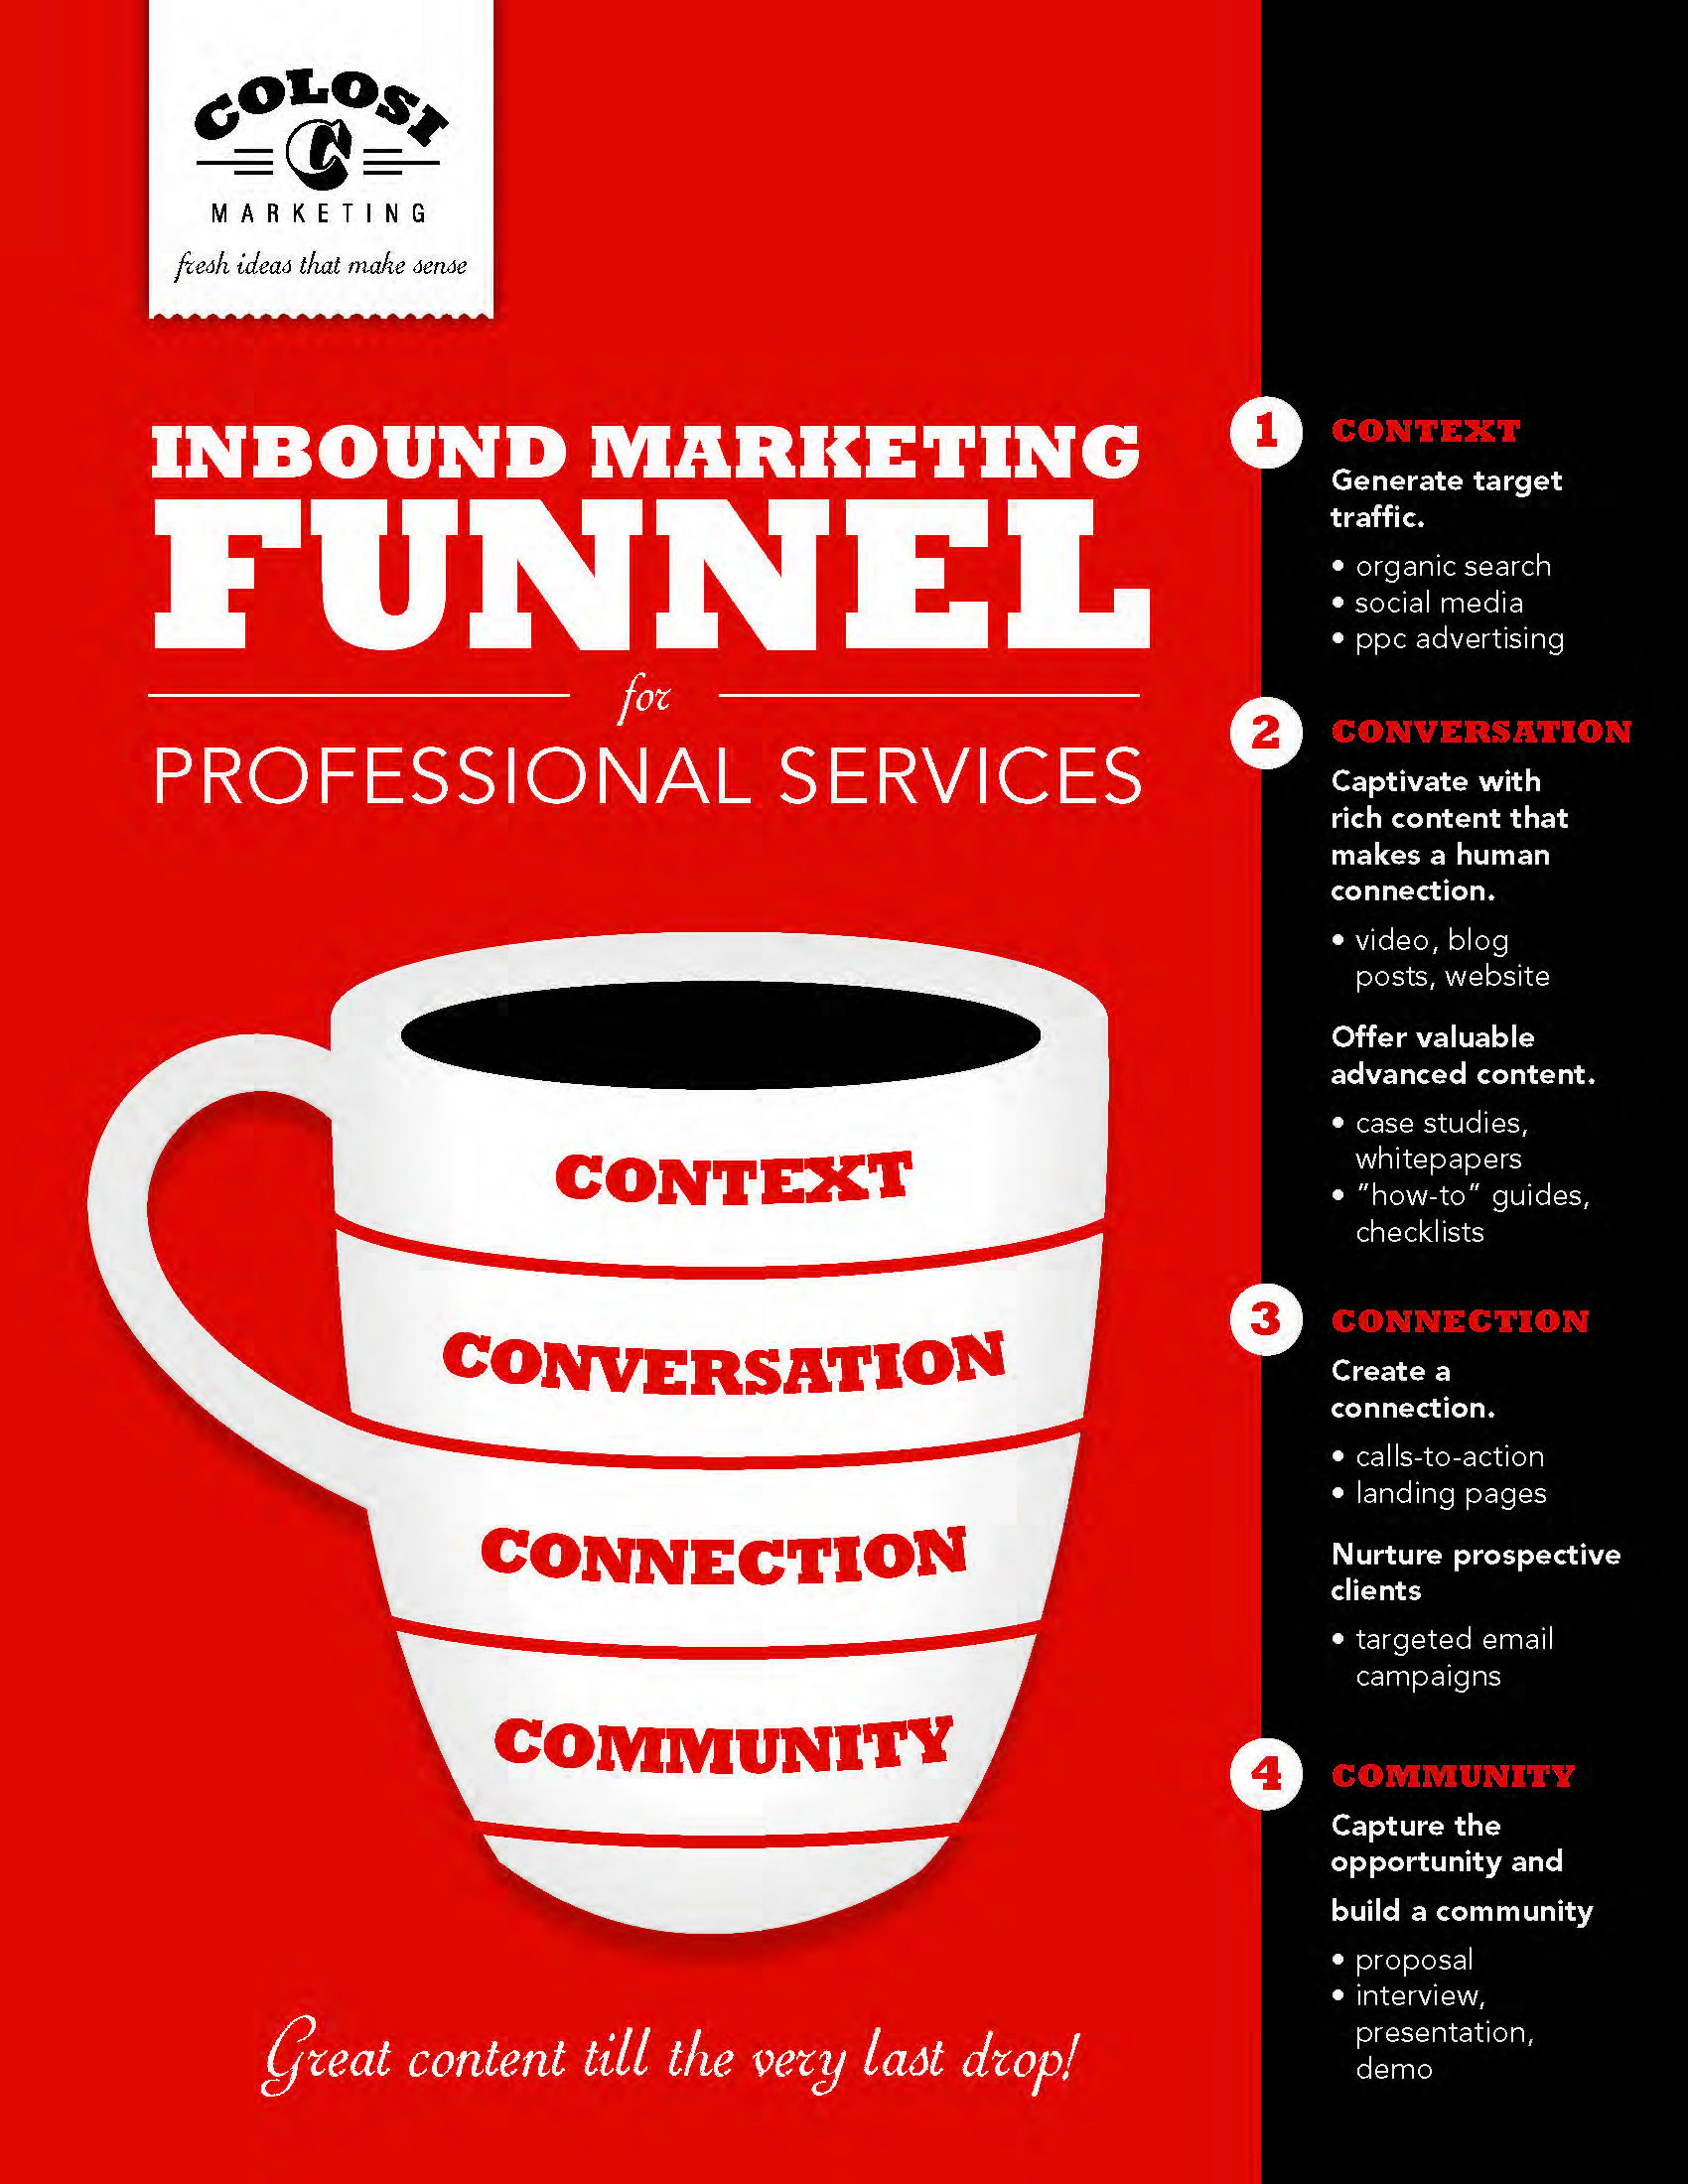 Inbound marketing funnel for professional services